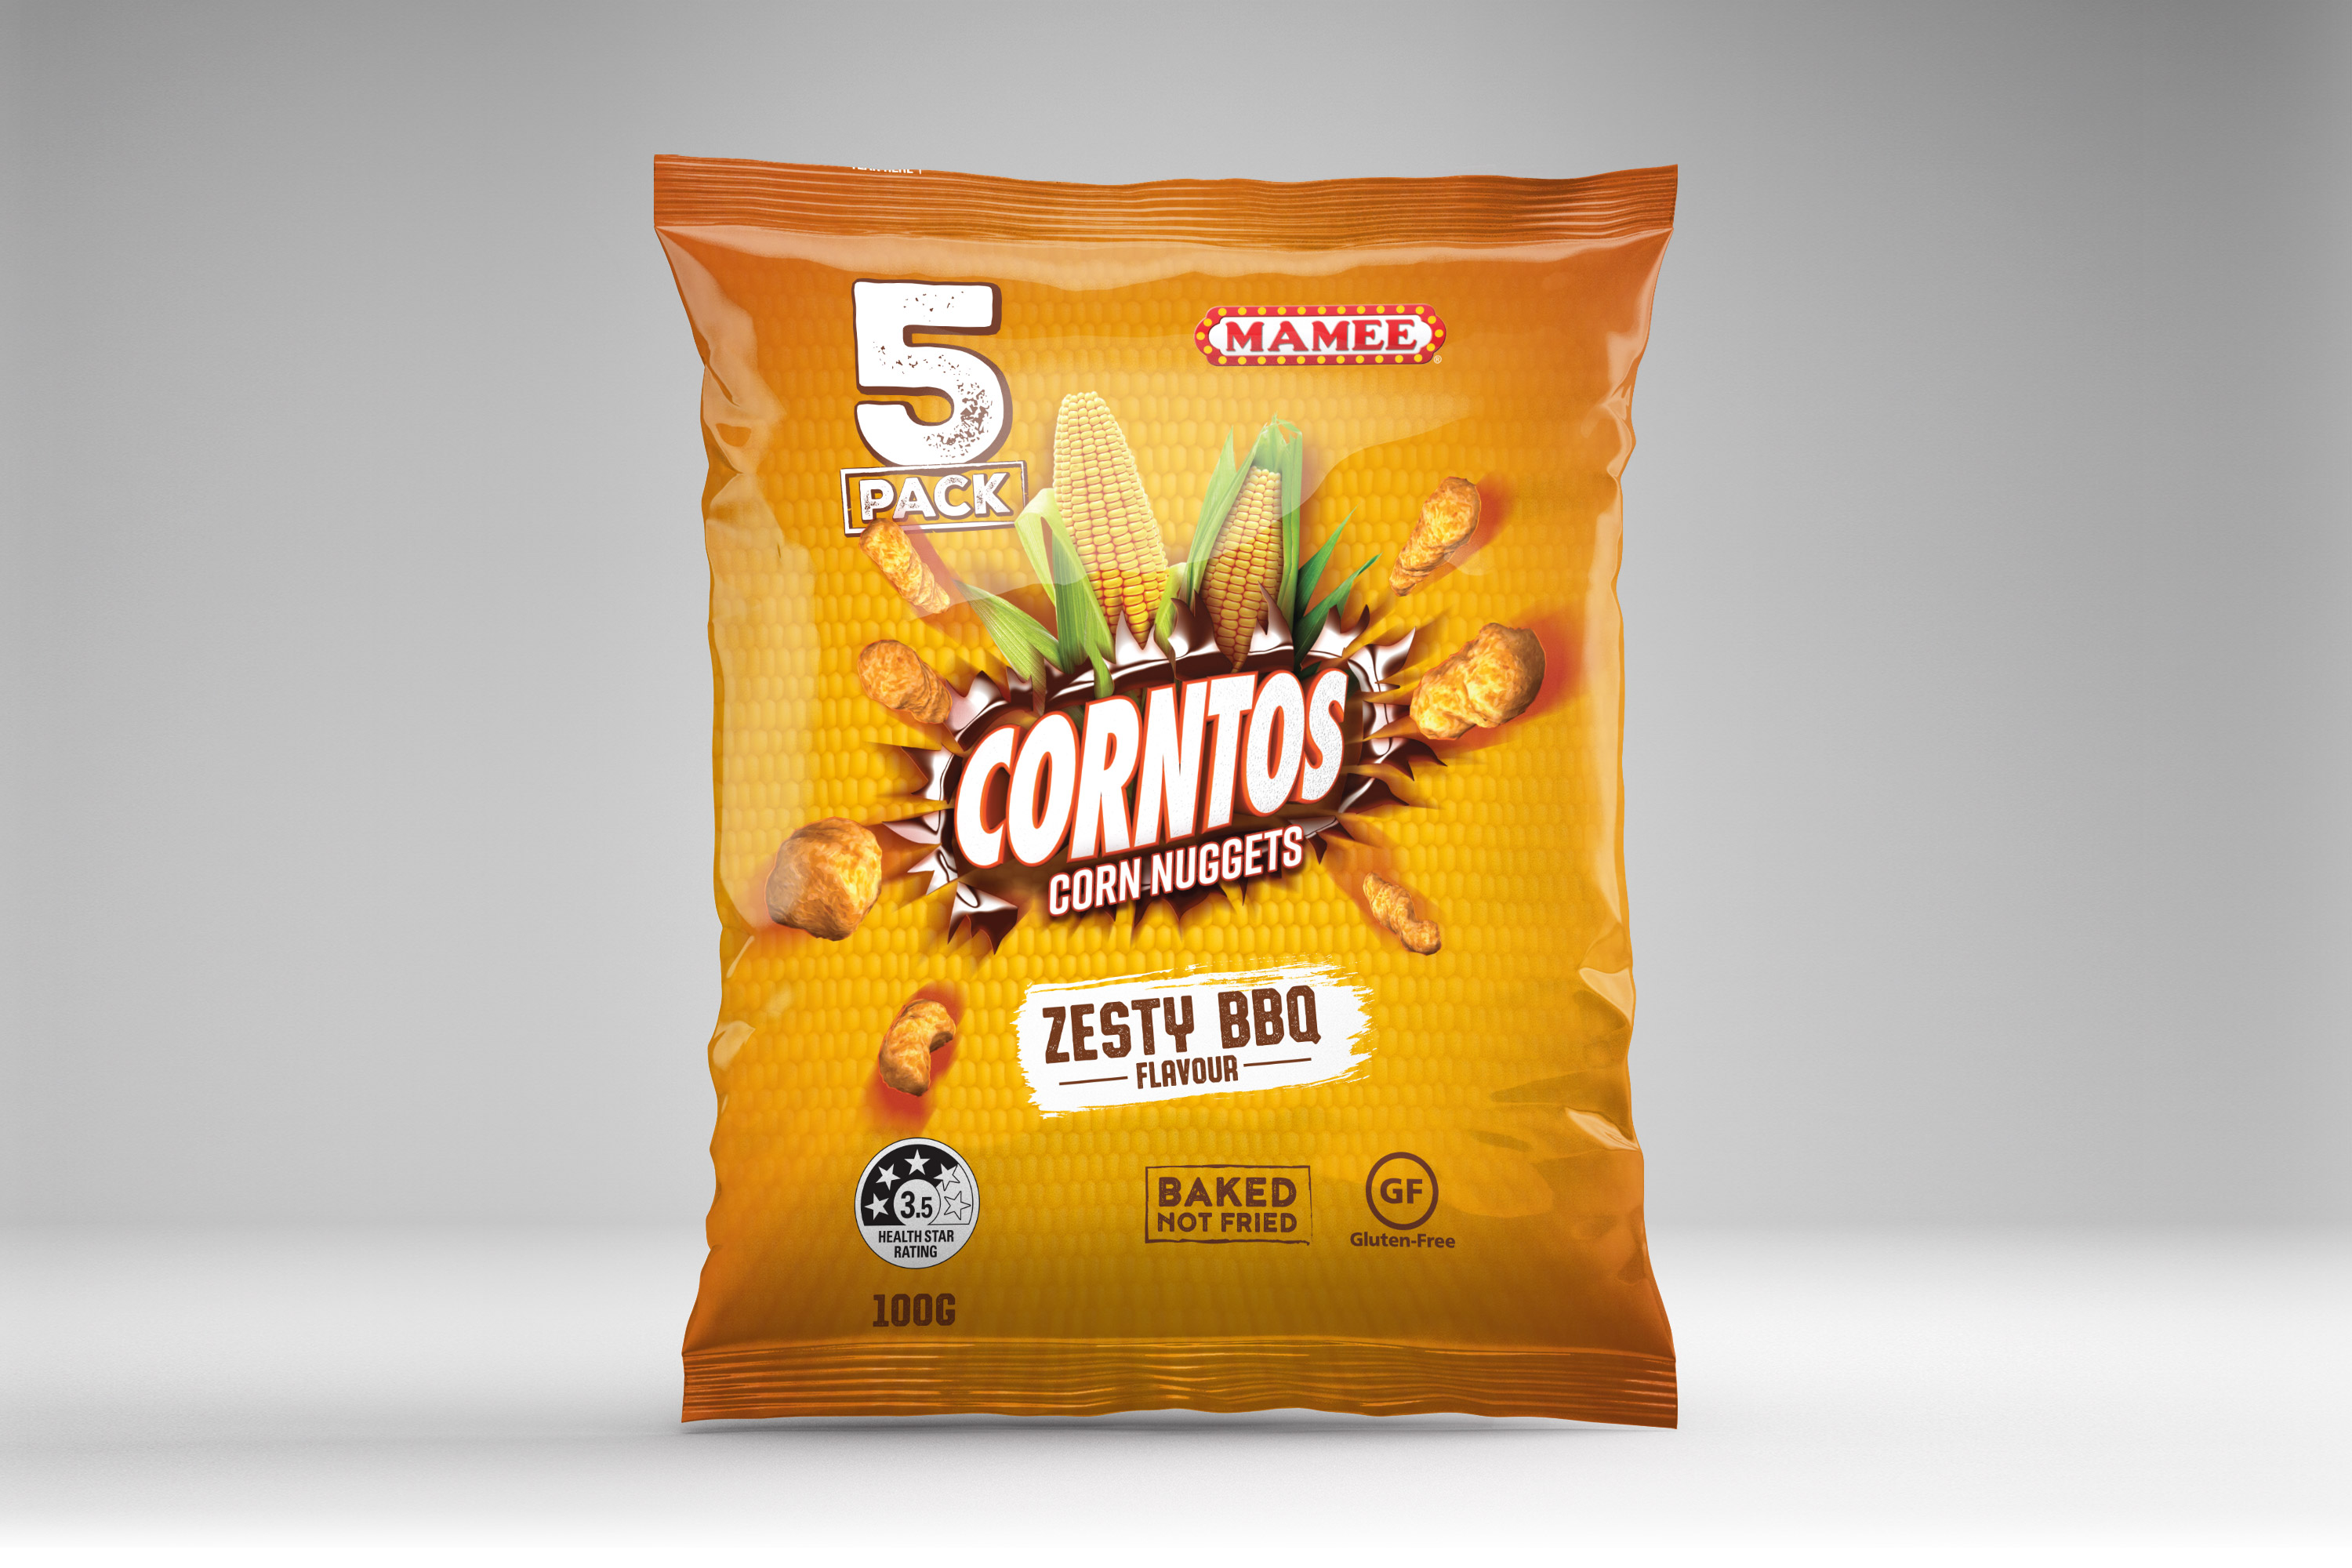 Mamee Corntos BBQ Packaging Design